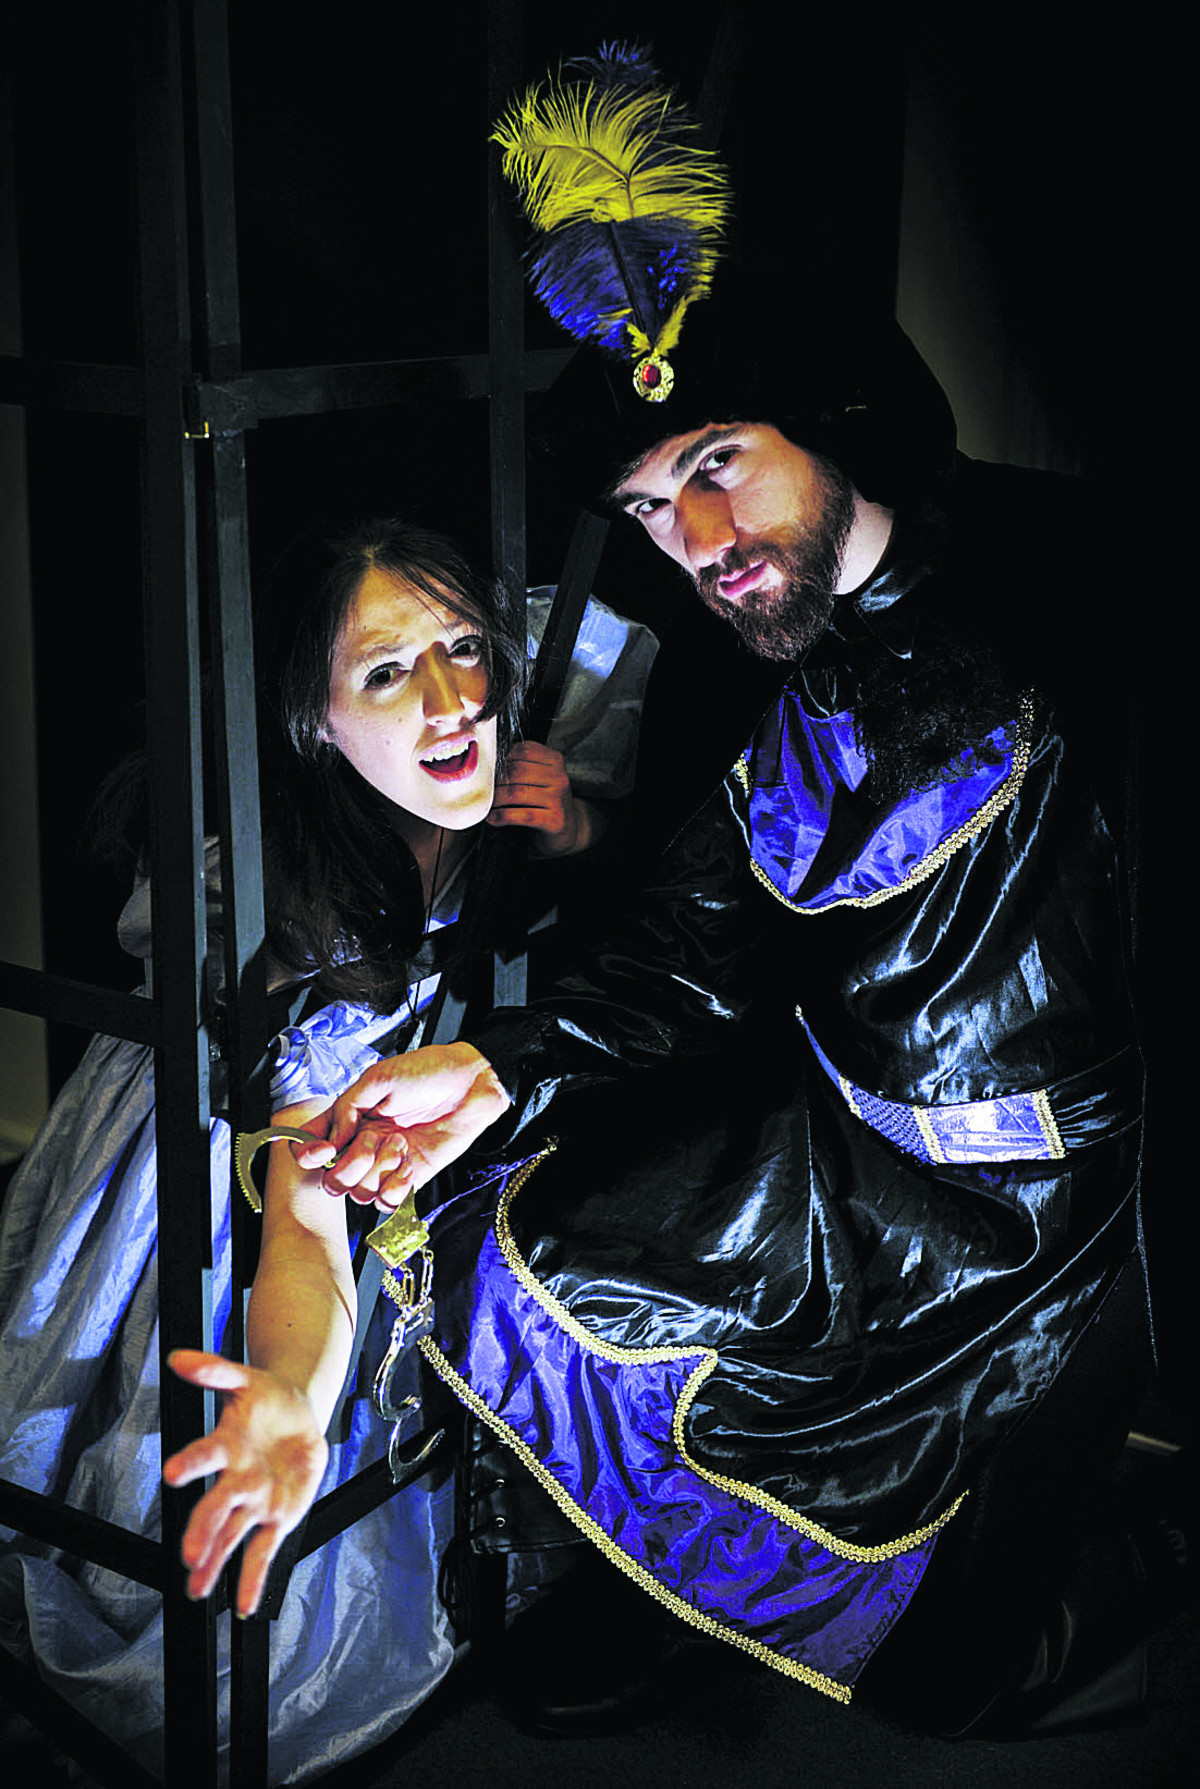 Richard Dreyer, as Evil Lord Roger, locks up Princess Alice, played by Emily Hemming in the Witney Methodist Church panto, Puss in Boots